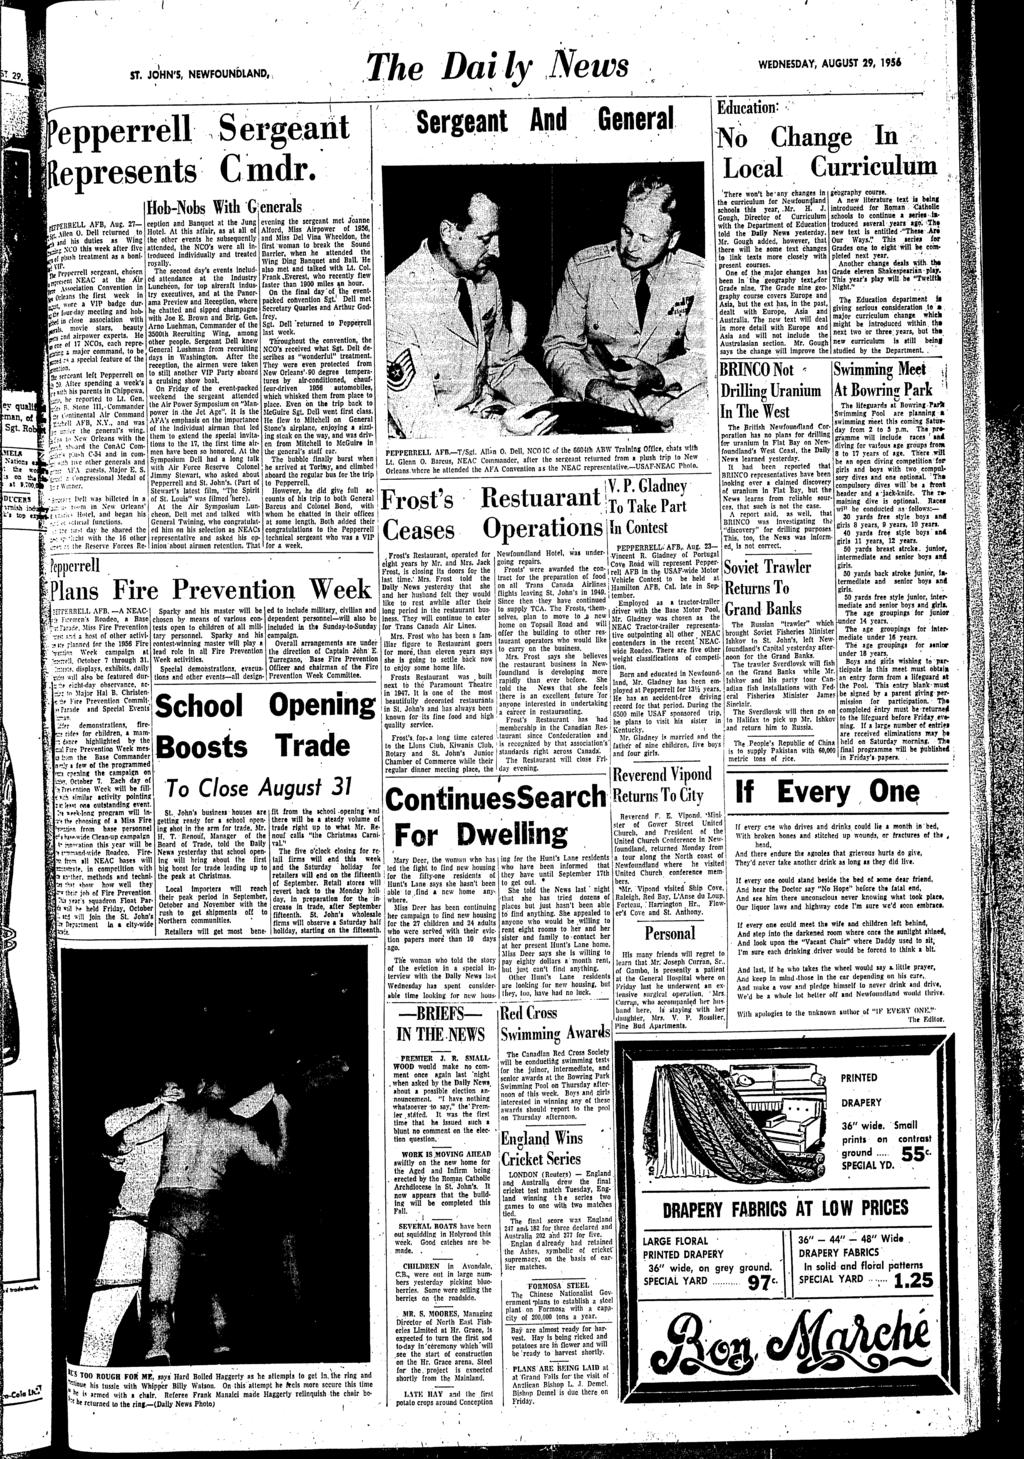 i~ '/ ' '1 ST JOHN'S NEWFOUNDLAND The Daily News fj' WEDNESDAY' AUGUST 29 1956 epperrell epresents' 1'rEltRELL AFB Aug 27- r len O Dell rcturned to Jnd his duties as Wing ~CO this week after c